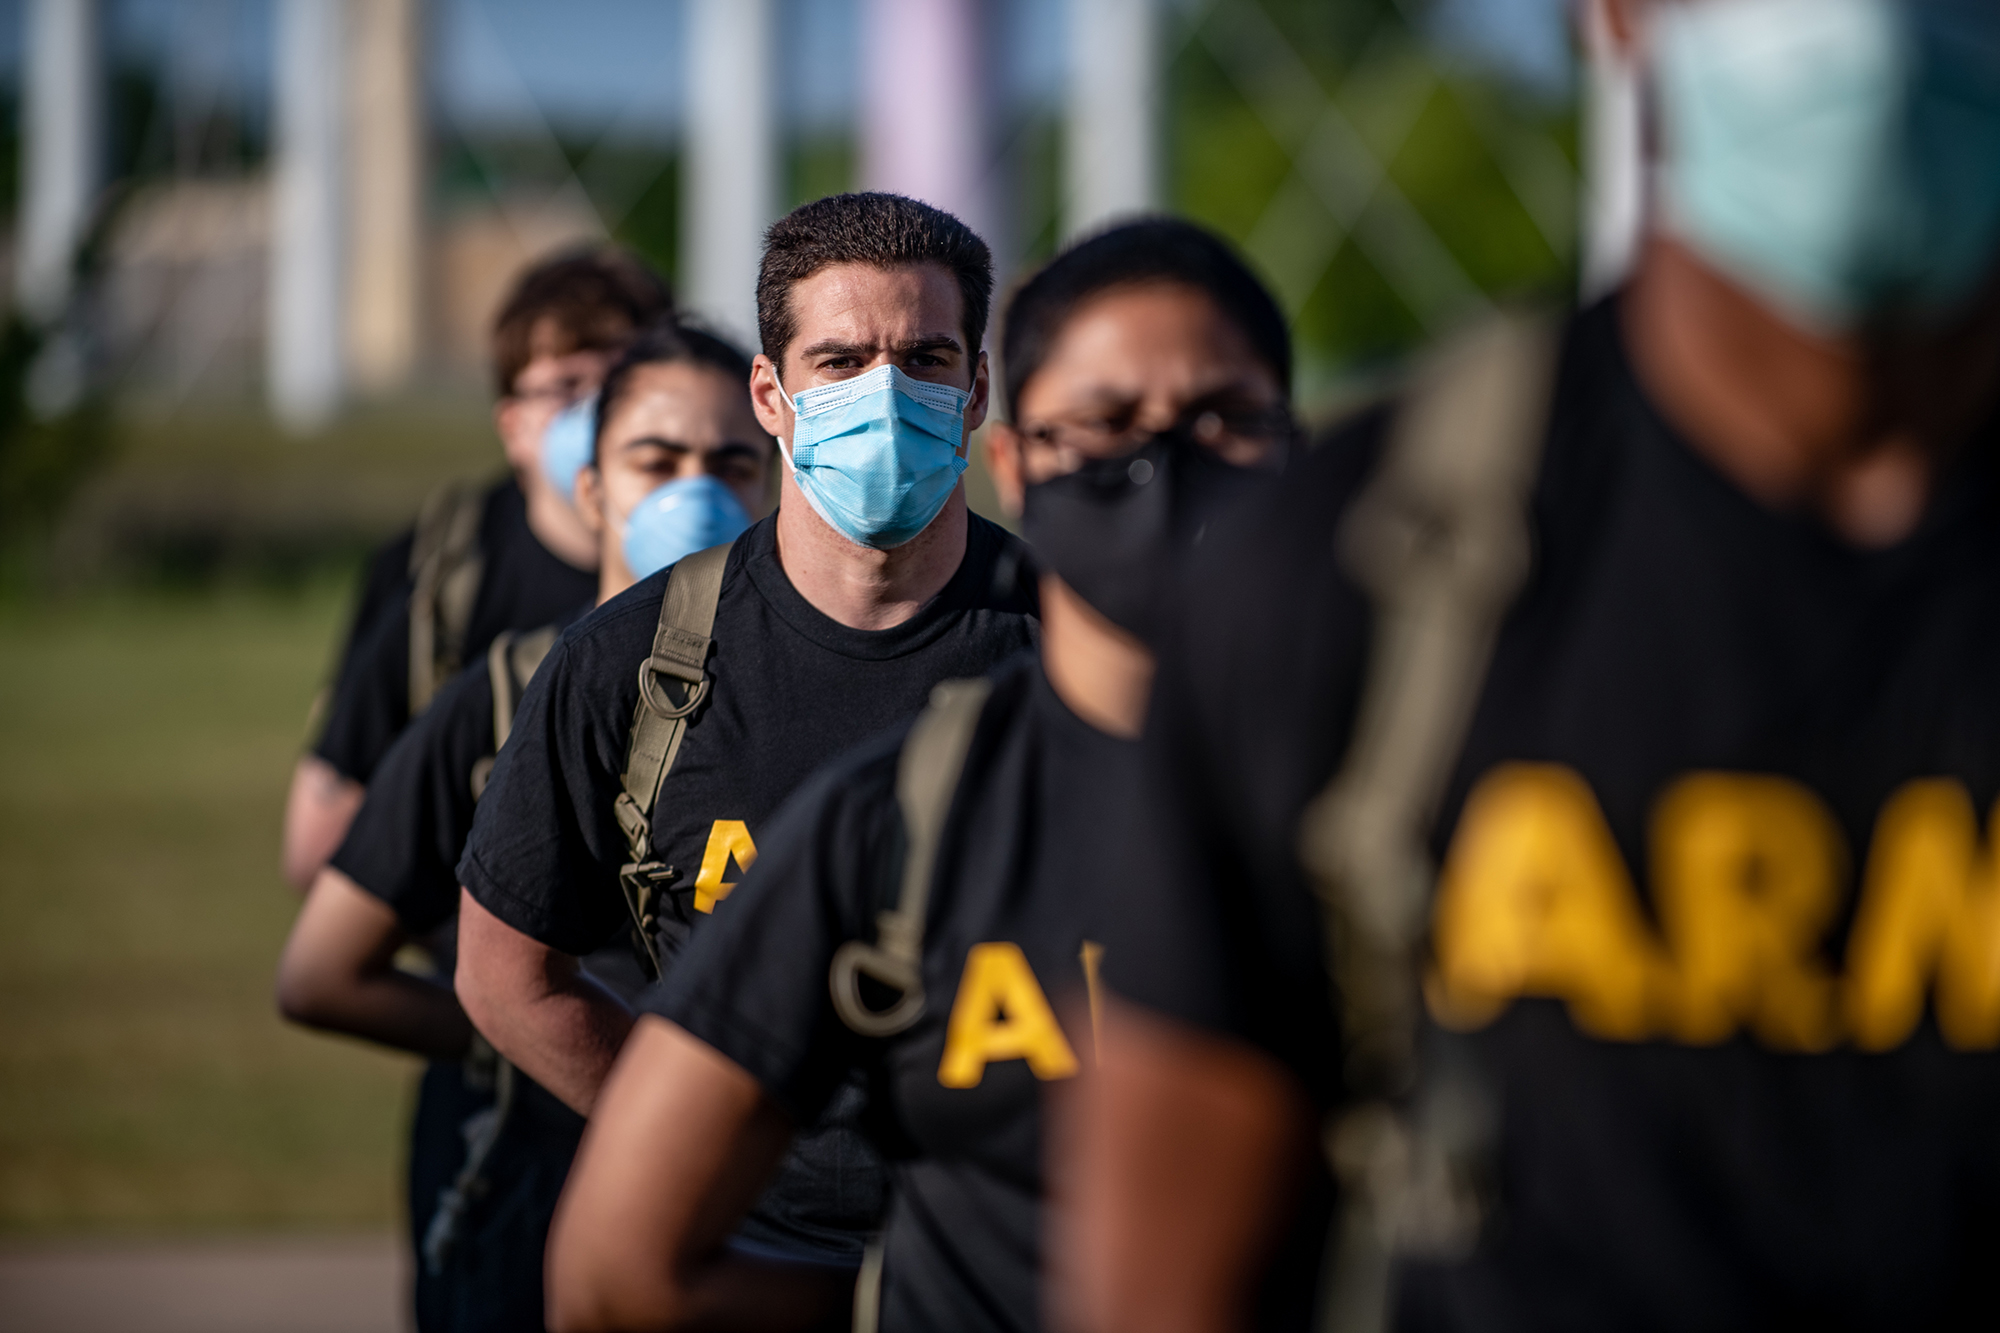 Soldiers from 95th Adjutant General Battalion, 434th Field Artillery Brigade, Fort Sill, Okla., stand in formation while wearing masks and maintaining physical distancing during reception before entering basic combat training May 14, 2020, on Fort Sill. (Sgt. Dustin D. Biven/Army)